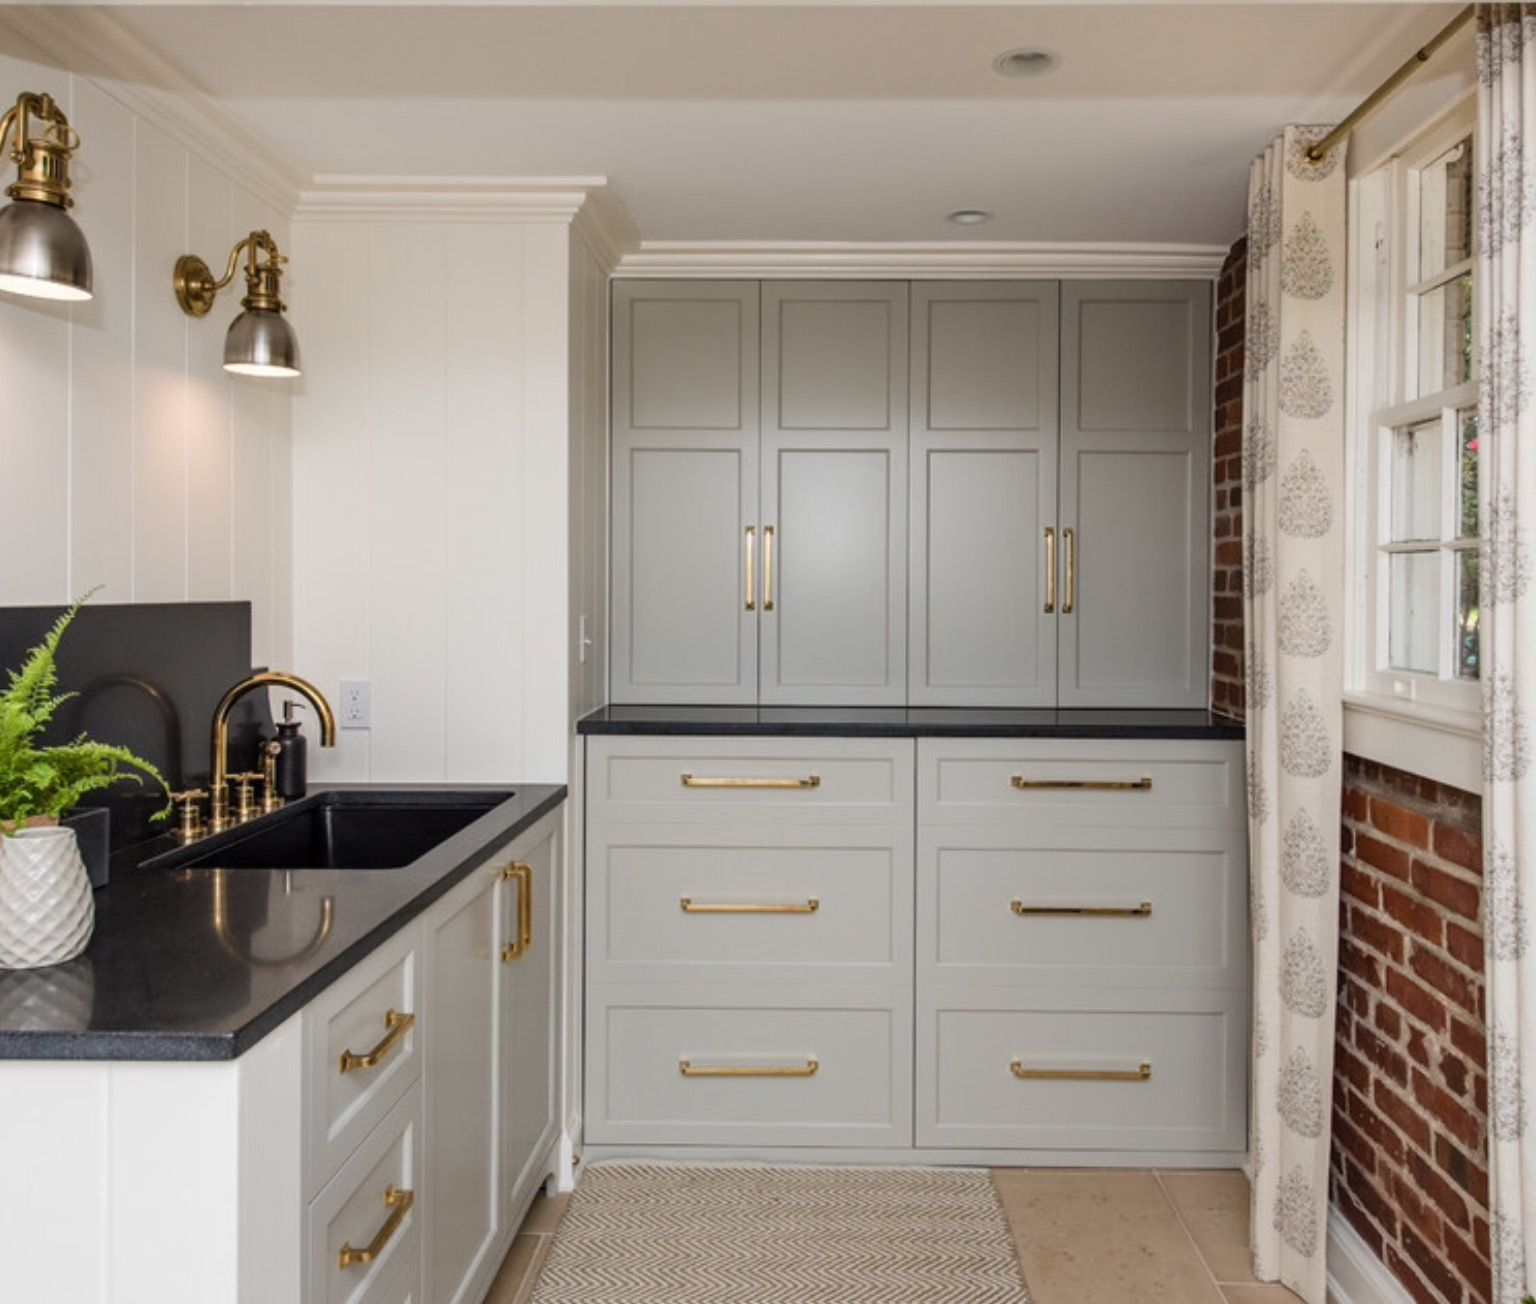 Hartland Kitchen And Laundry Room Remodel: Pin By Lindsey Bertholf On Laundry Closet Makeover In 2019